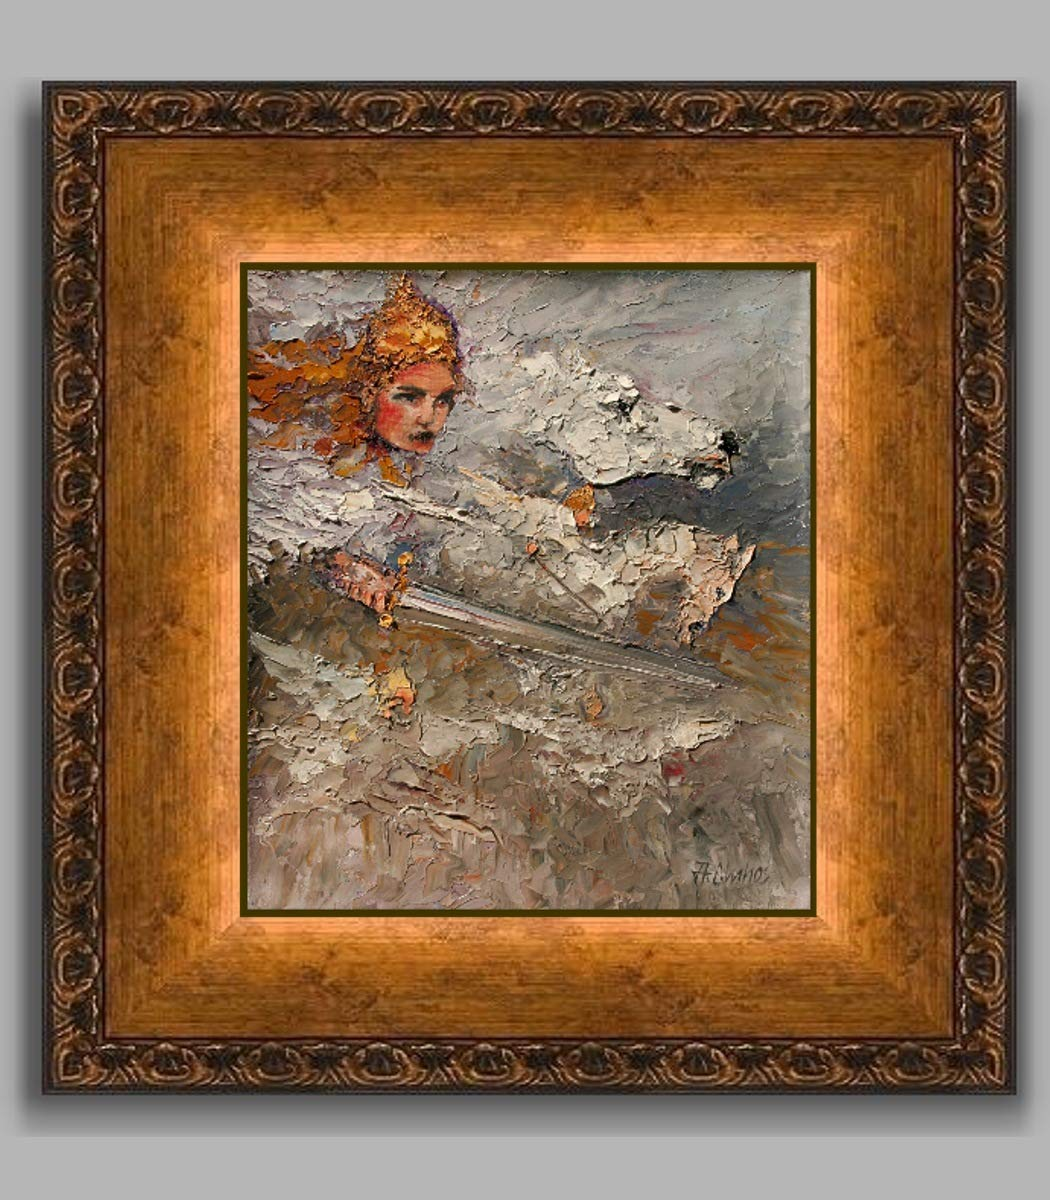 Valkyries the Norse legend by internationally renown painter Andre Dluhos